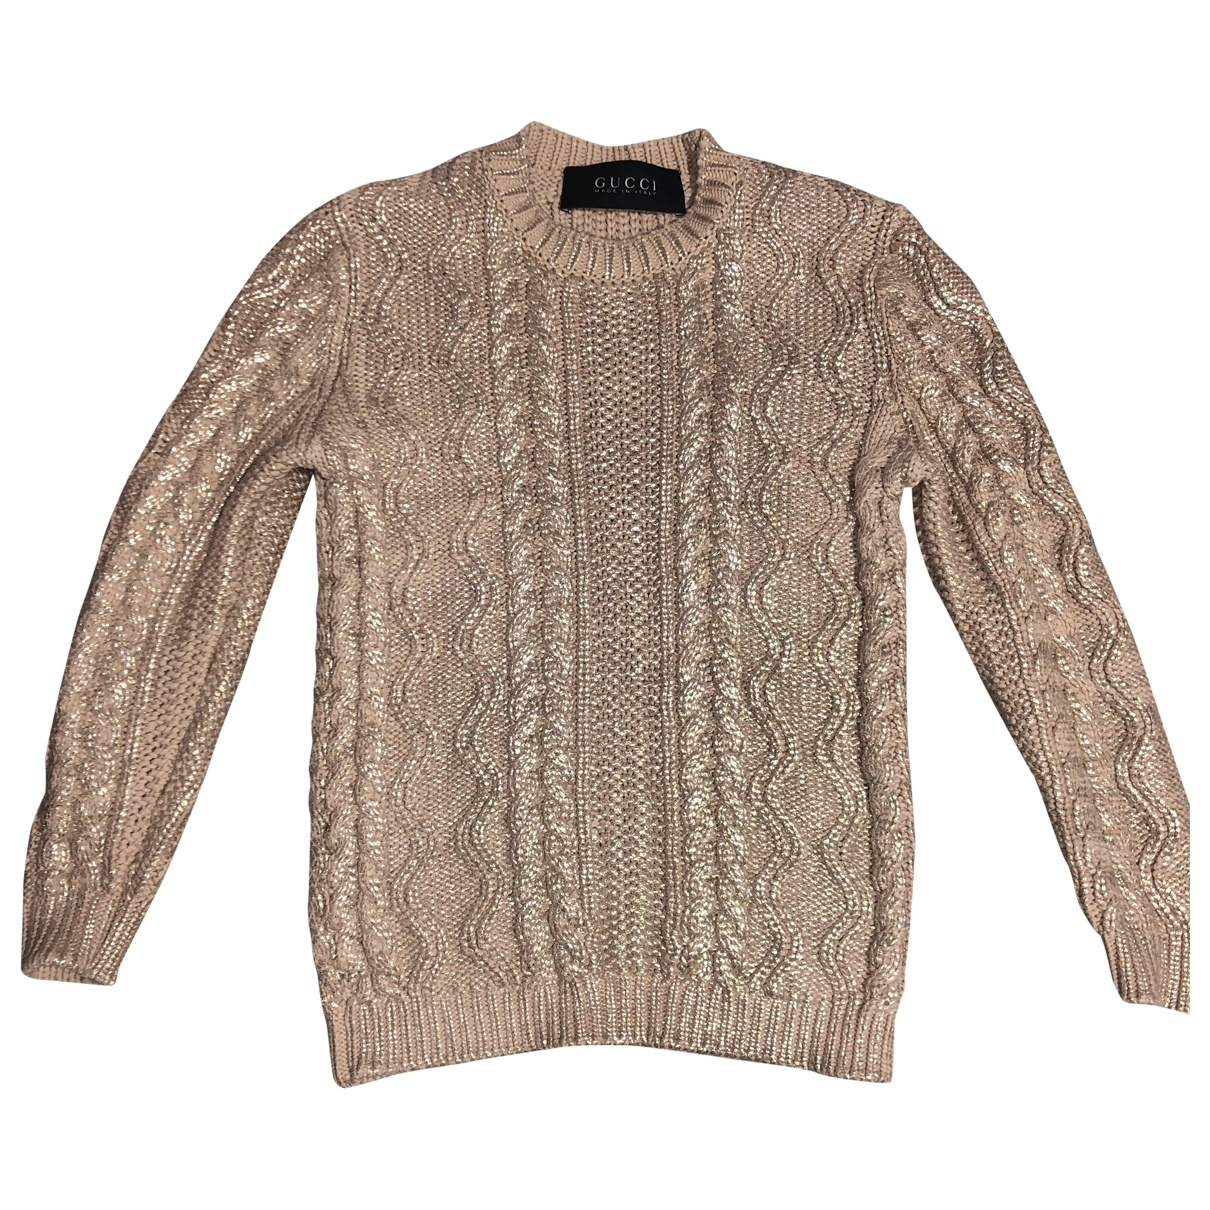 Gucci \N Beige Cotton Knitwear for Women XS International